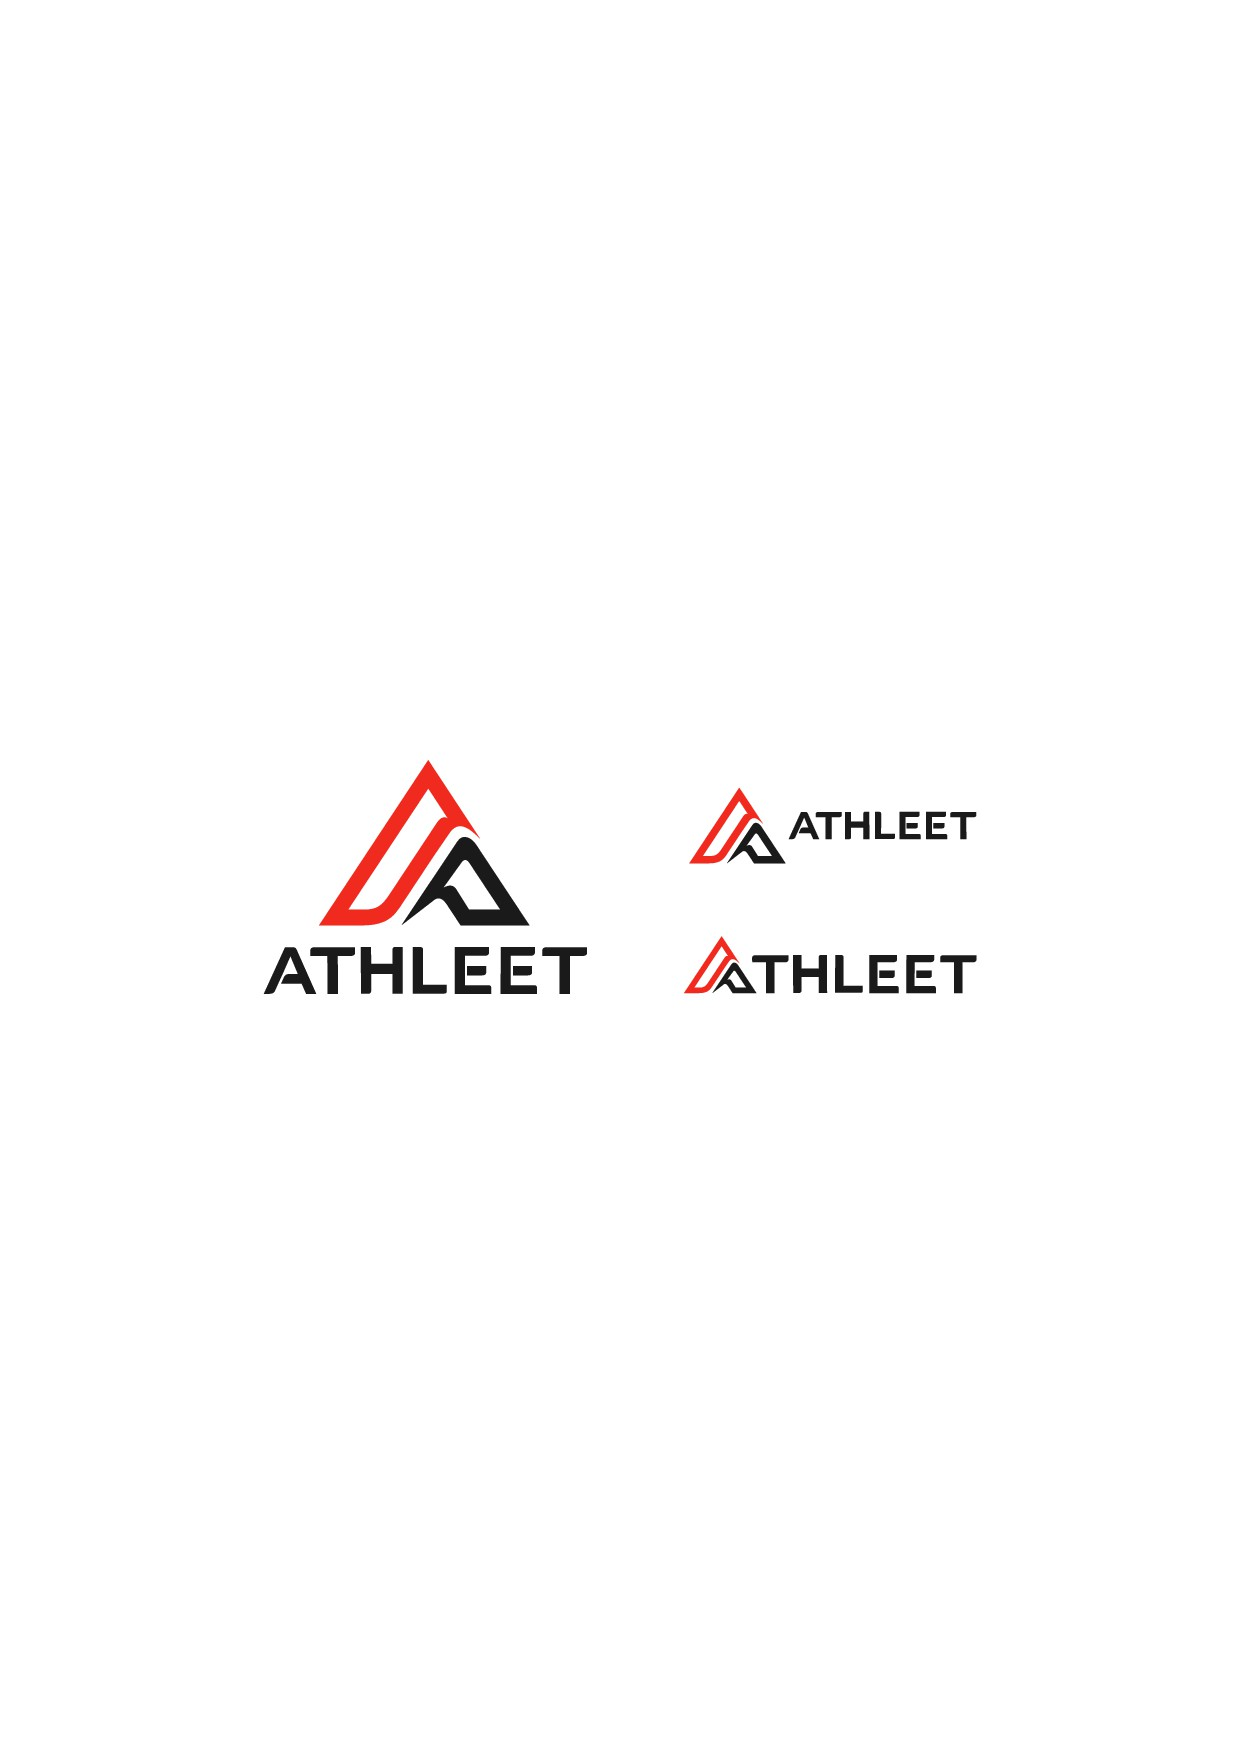 Athletic company seeks a strong brand logo that is simple and clear...